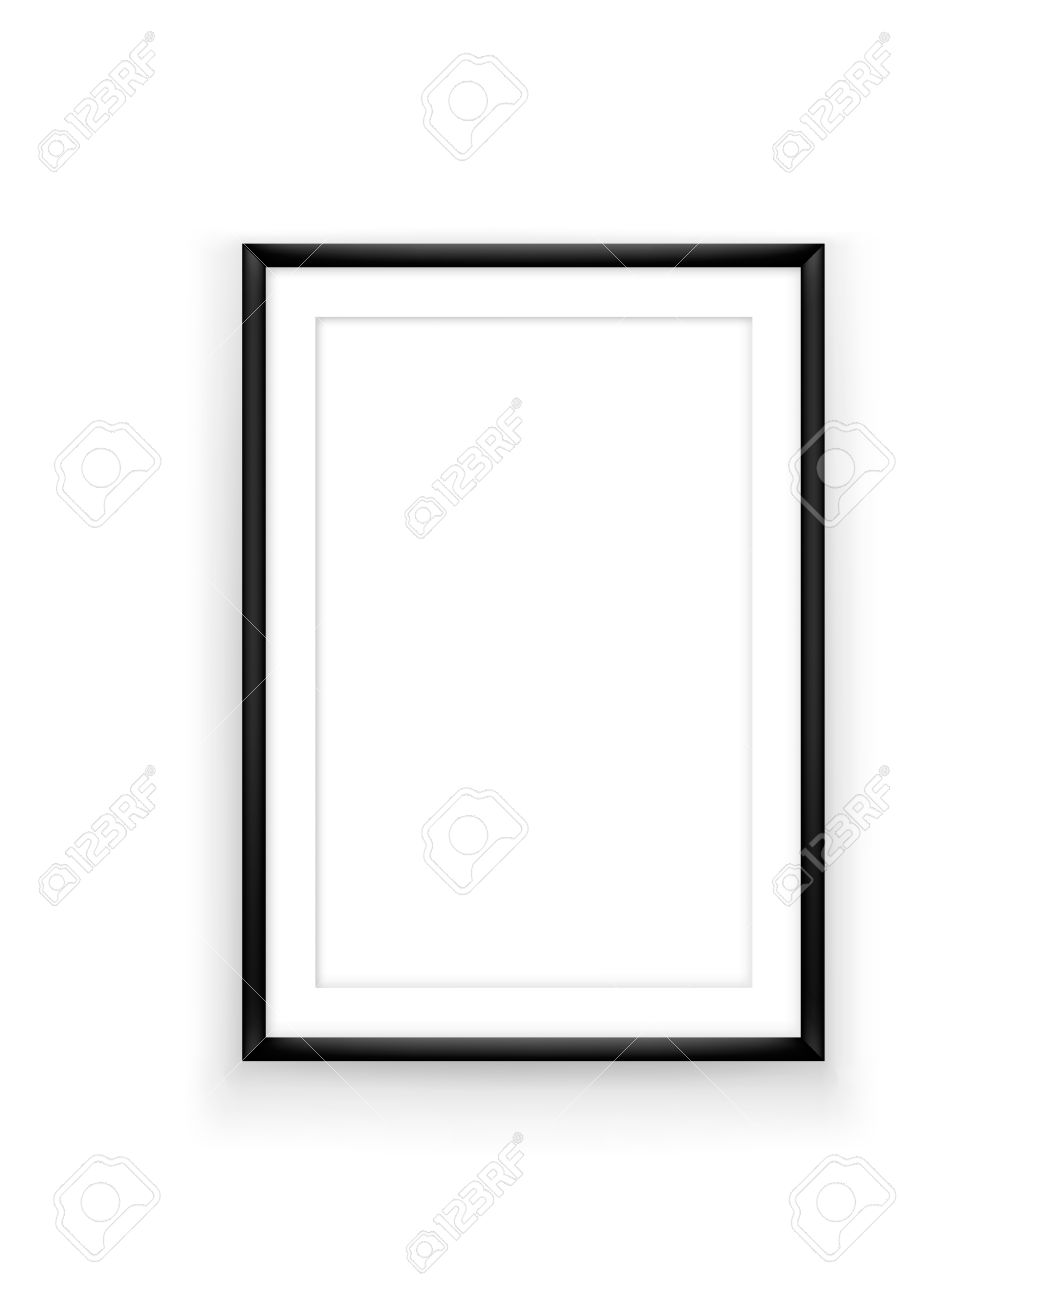 poster frame design template for exhibition or advertising picture frame mock up on white background - White Poster Frame